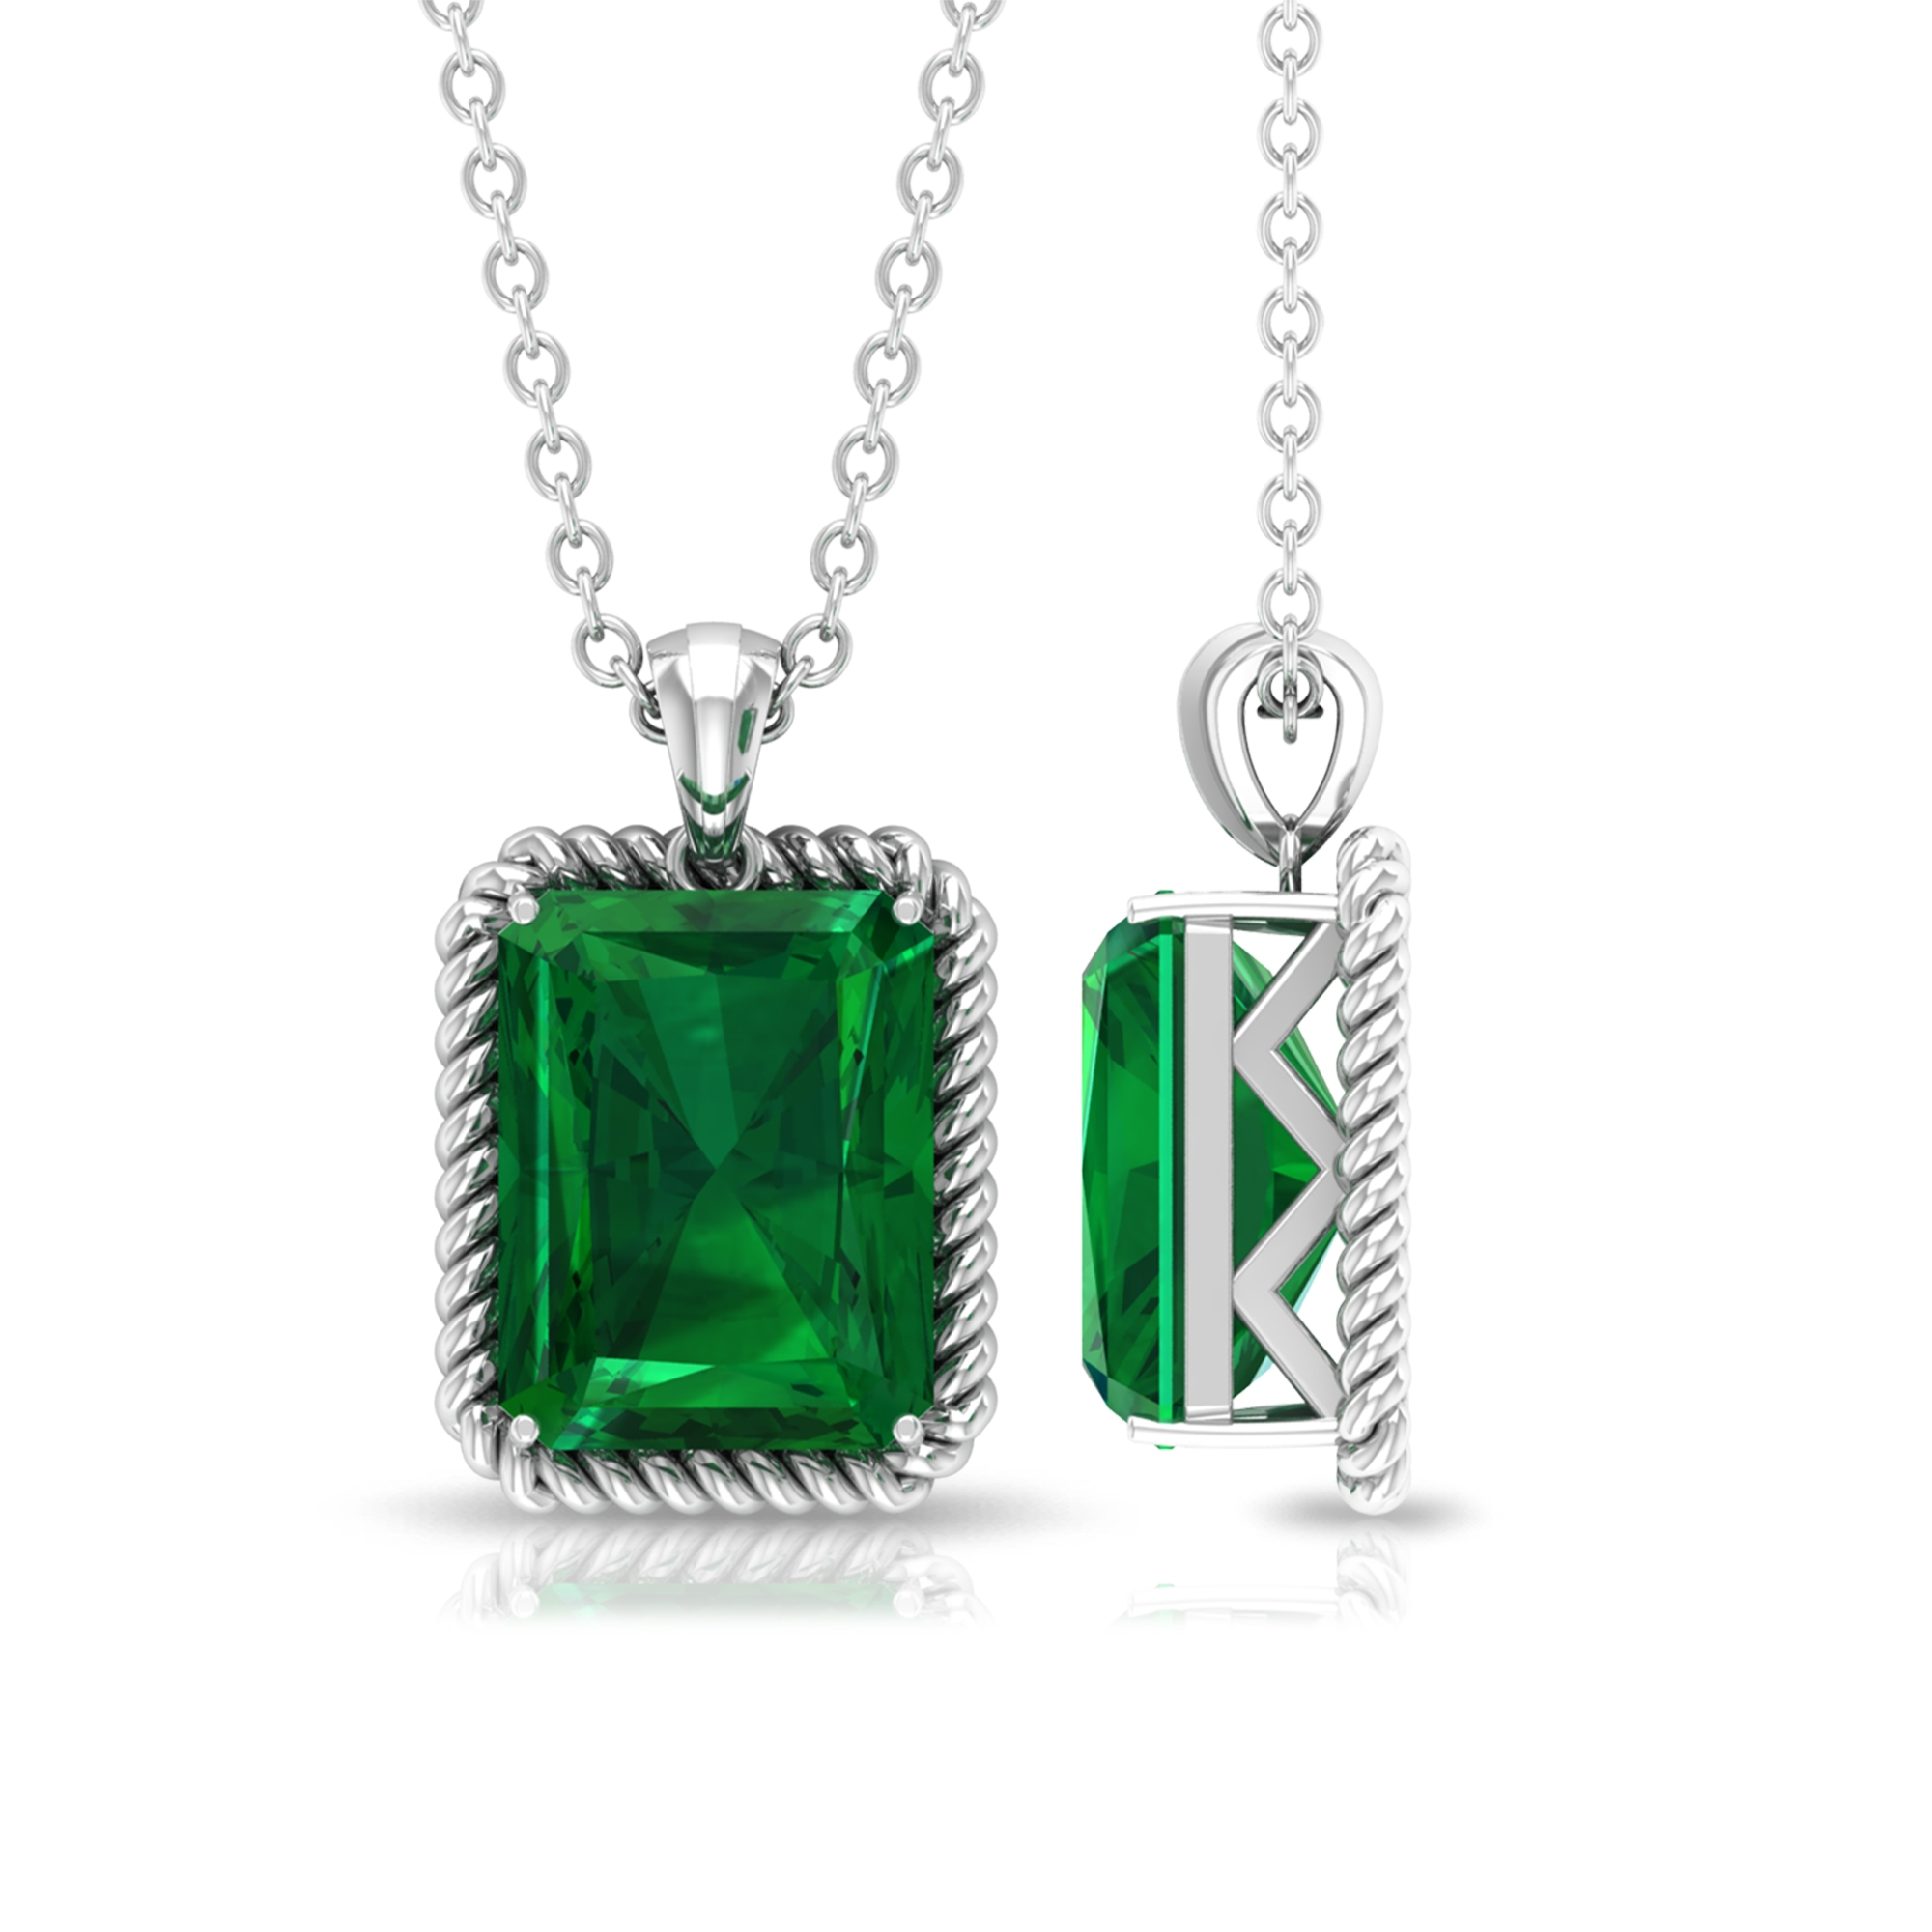 7X9 MM Octagon Cut Emerald Solitaire Pendant in Prong Setting with Bail in Rope Frame